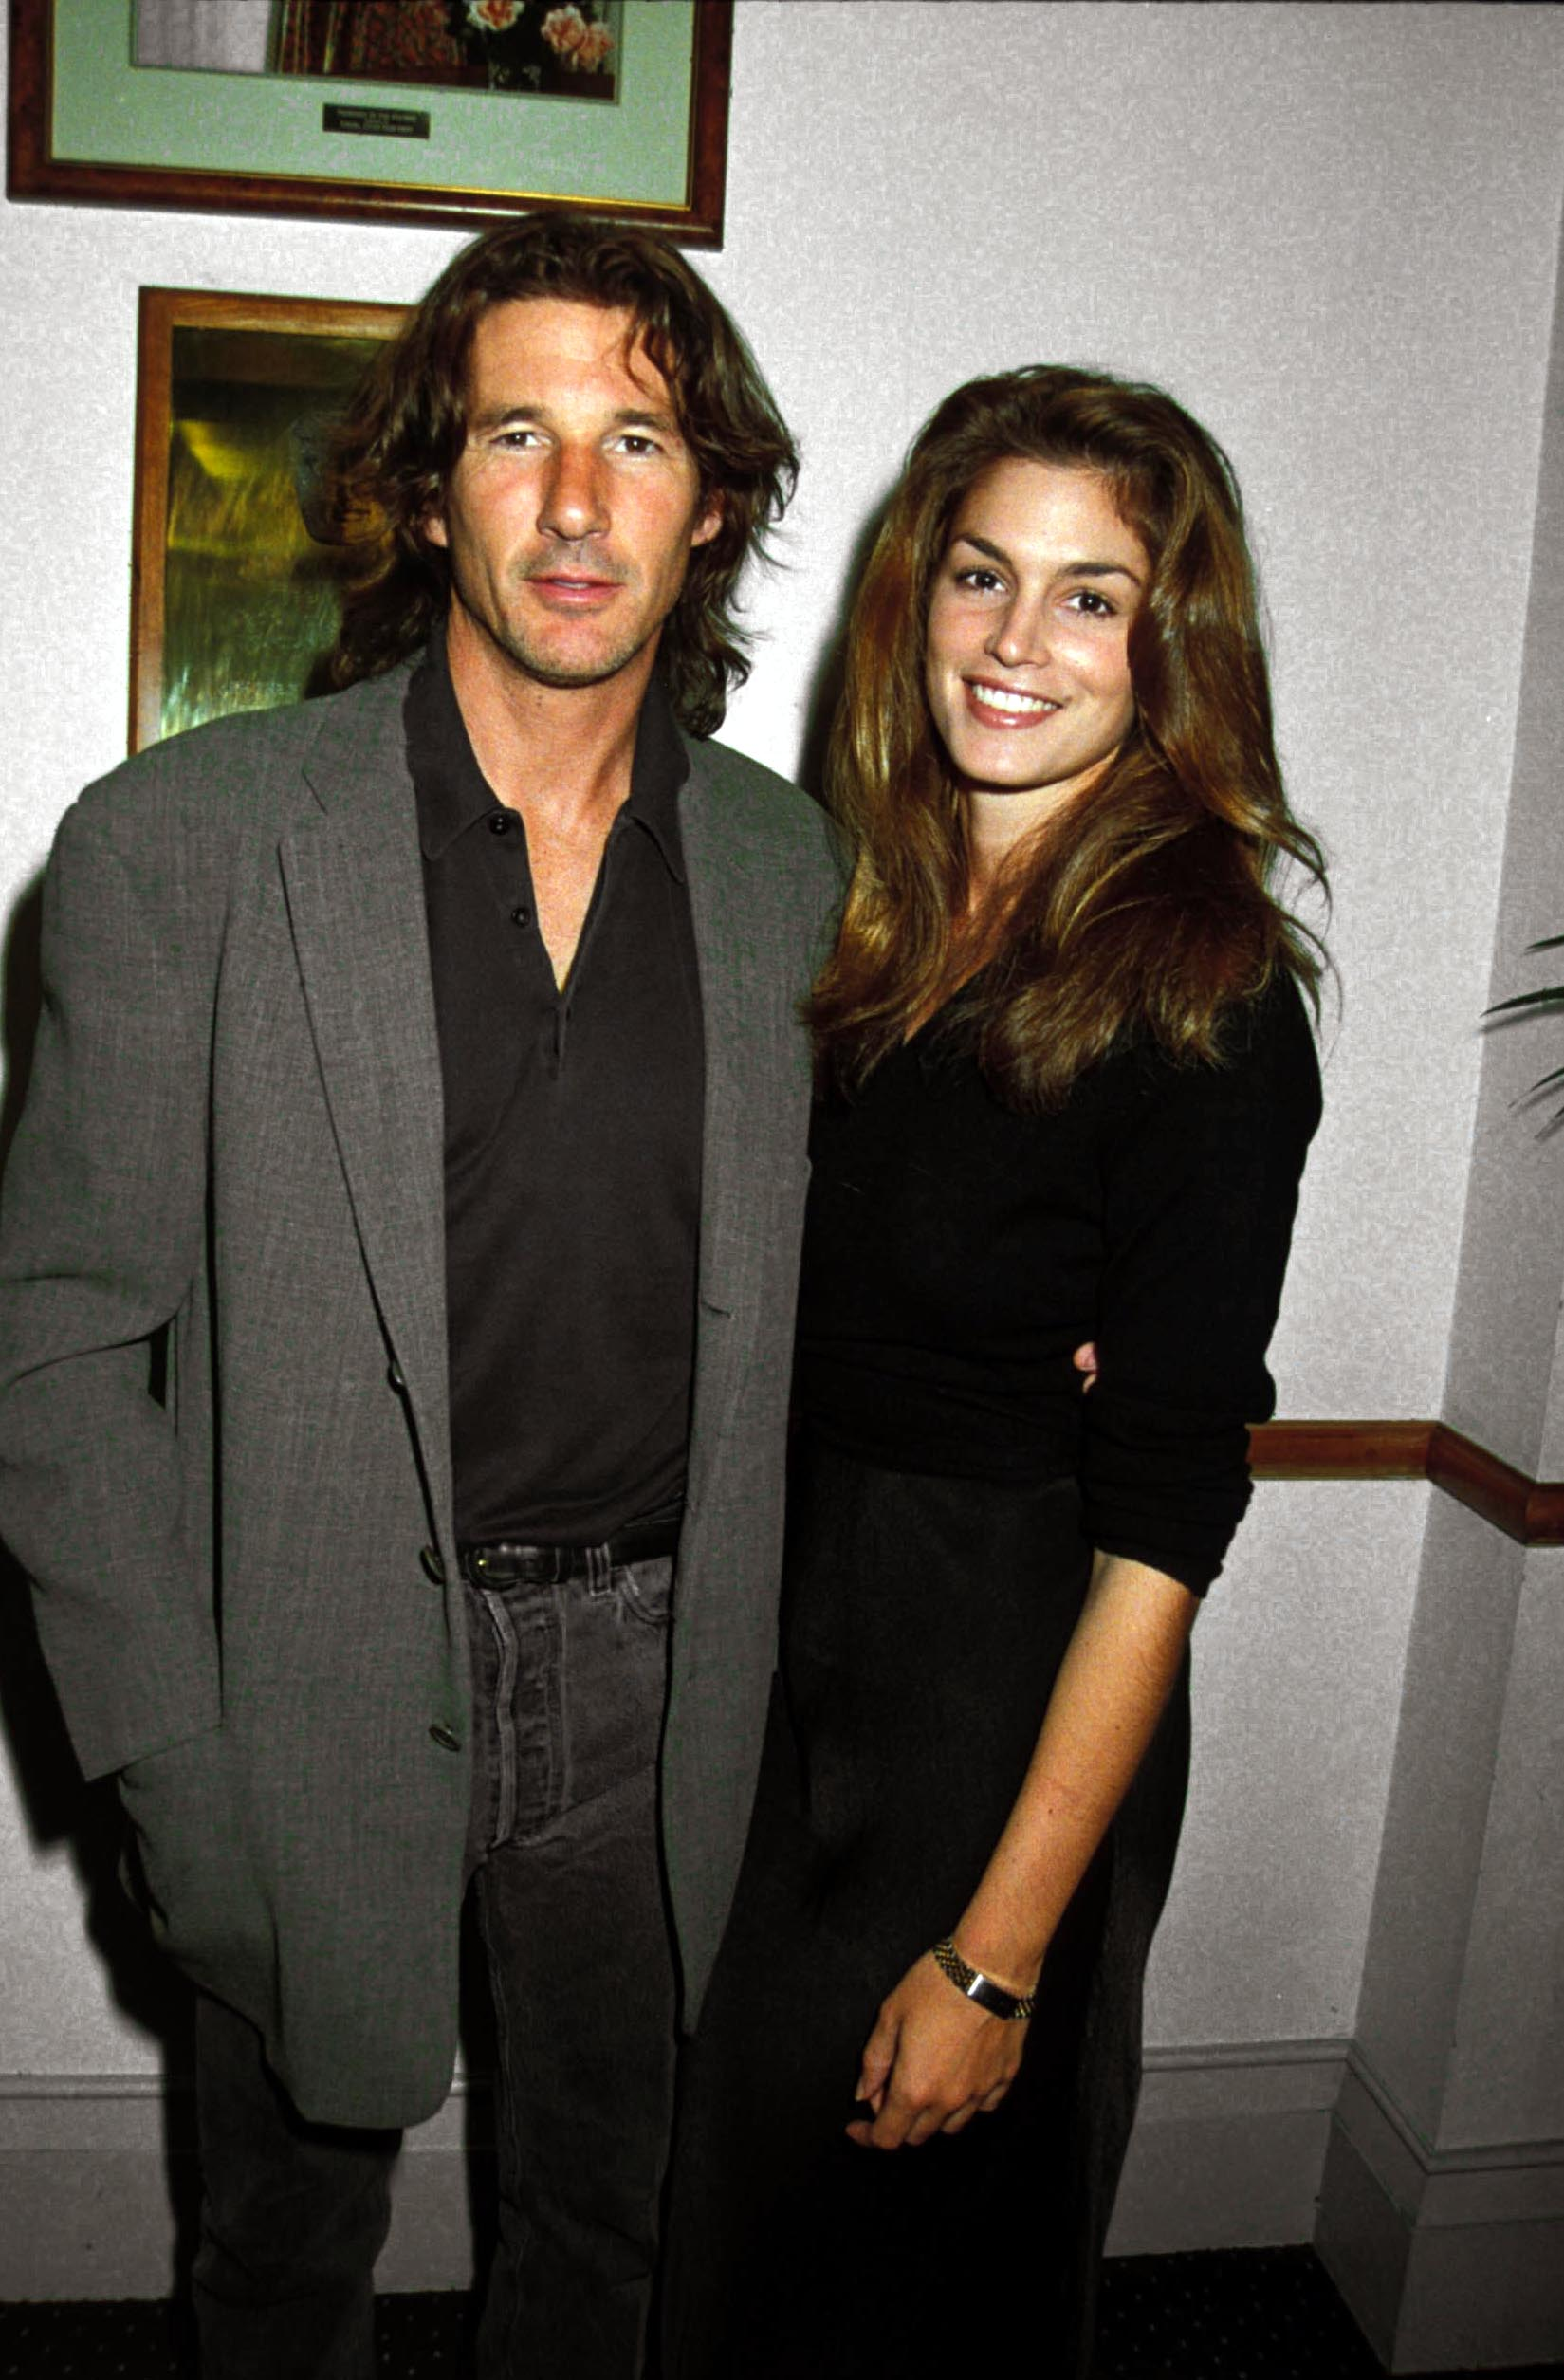 """Cindy Crawford and Richard Gere  attend the """"Mr Jones Premiere"""" circa 1991. 